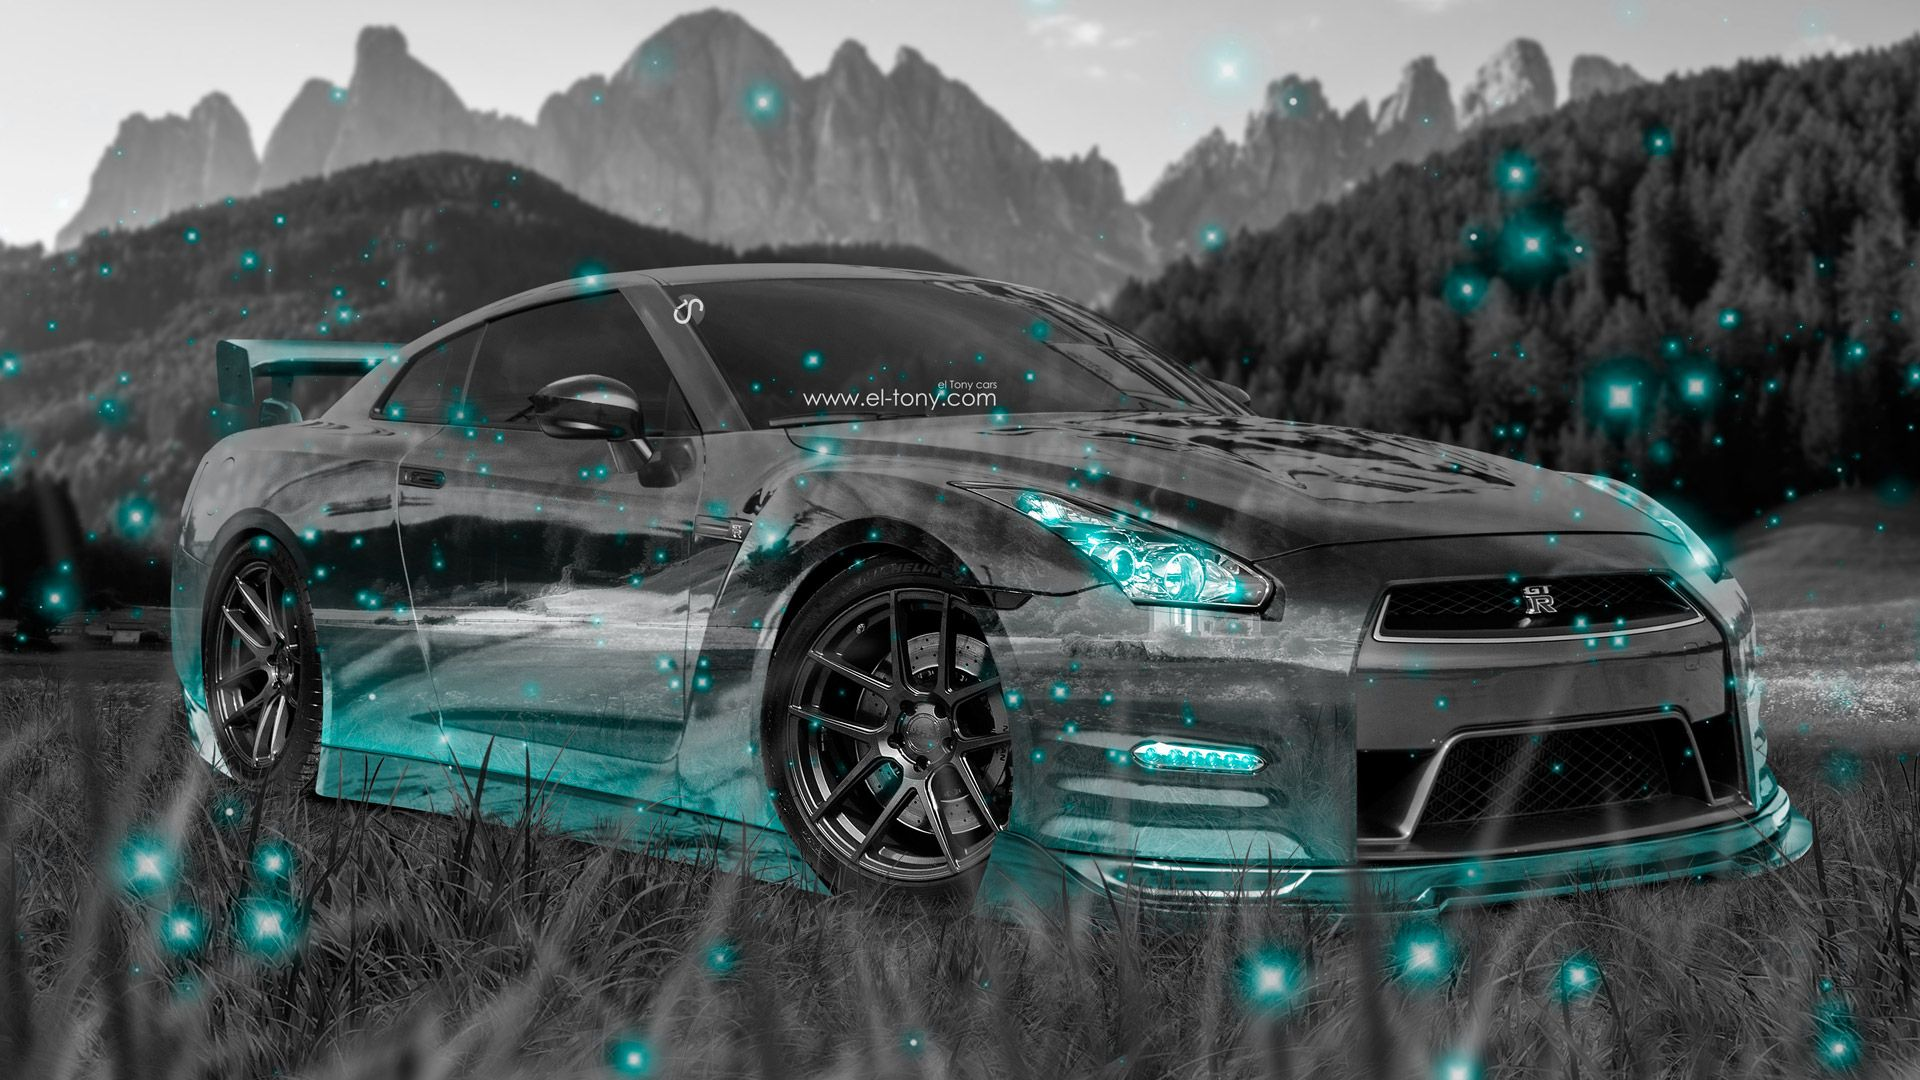 Cool GTR Wallpapers - Top Free Cool GTR Backgrounds ...